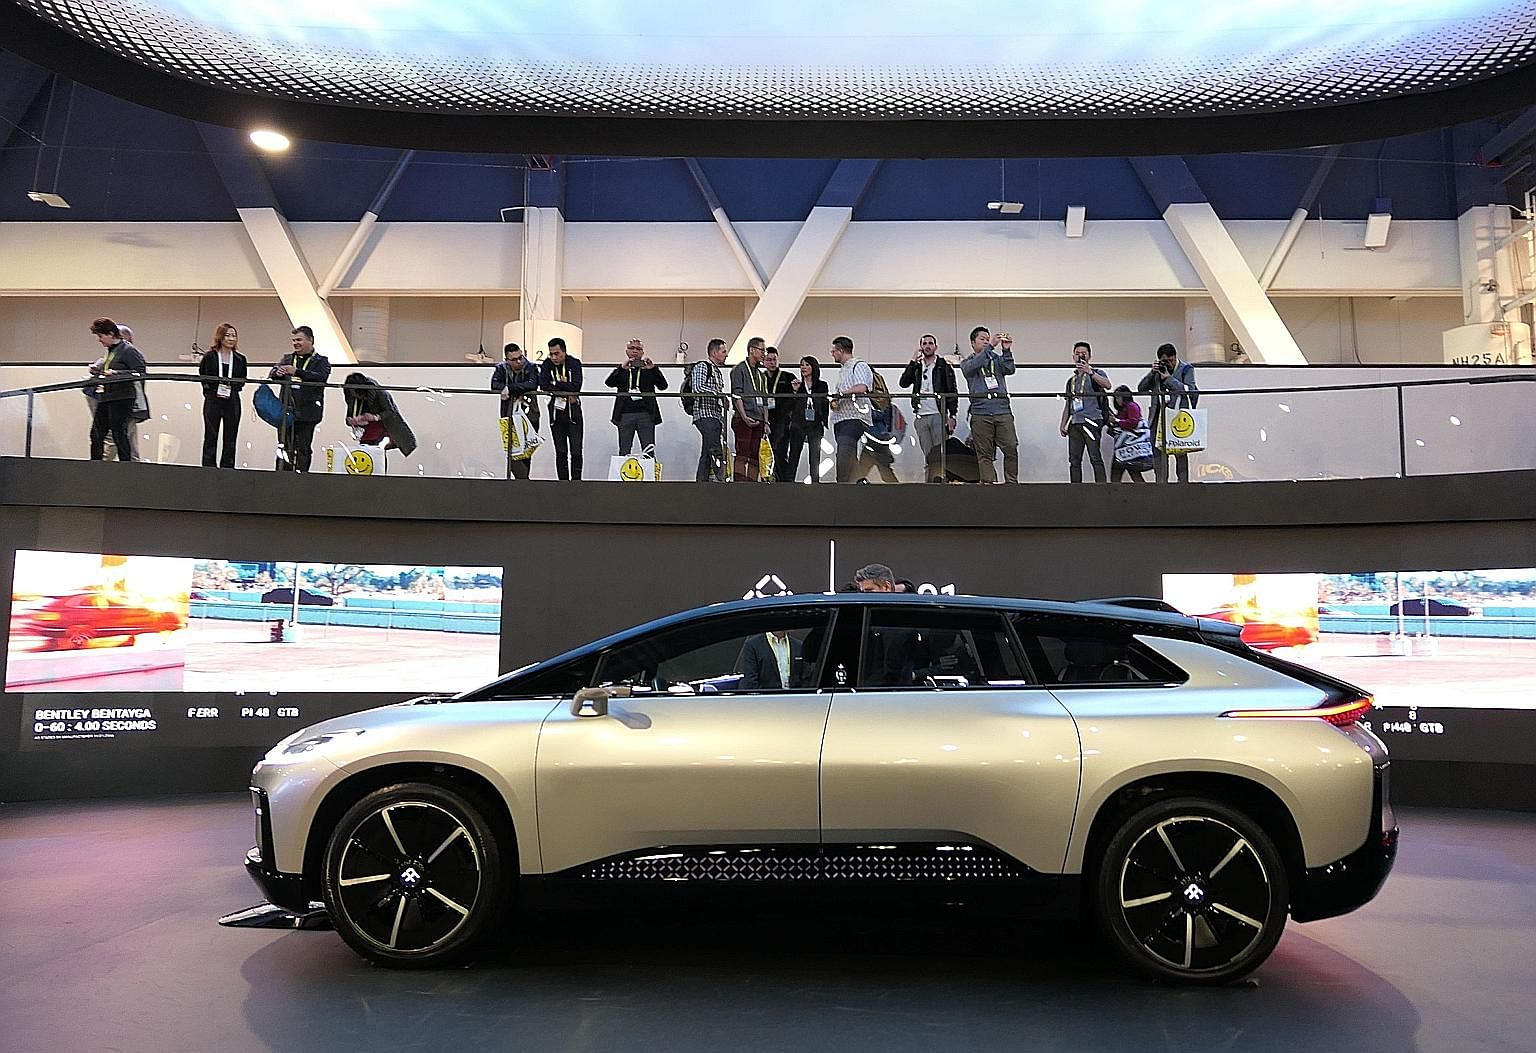 Faraday Future finally unveiled its first production vehicle, the FF91, at the show.